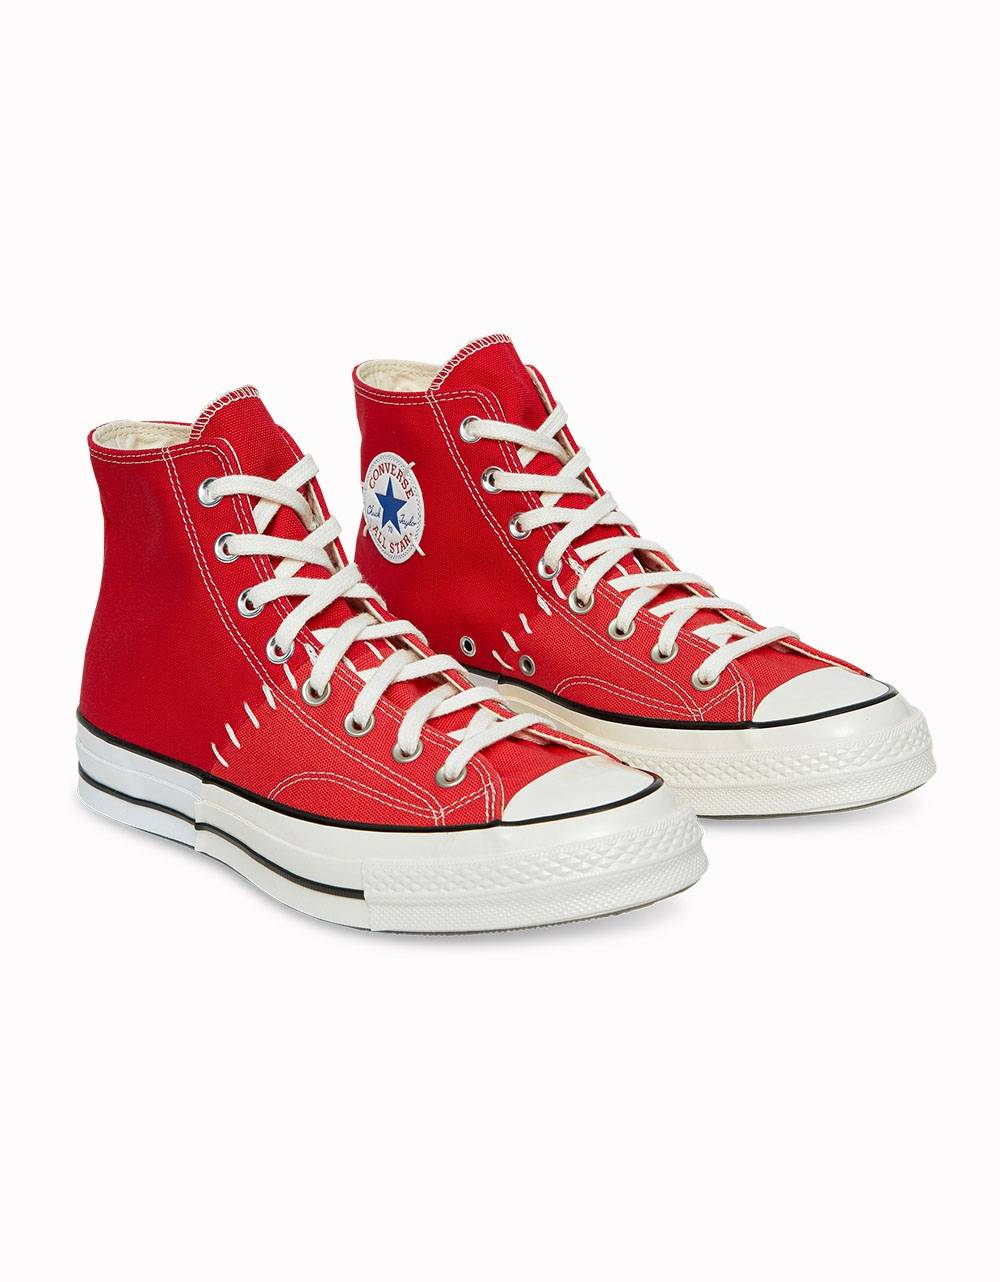 Converse Chuck Taylor 70 Recostructed High ltd - Red/sedona red/egret Converse Sneakers 116,39€